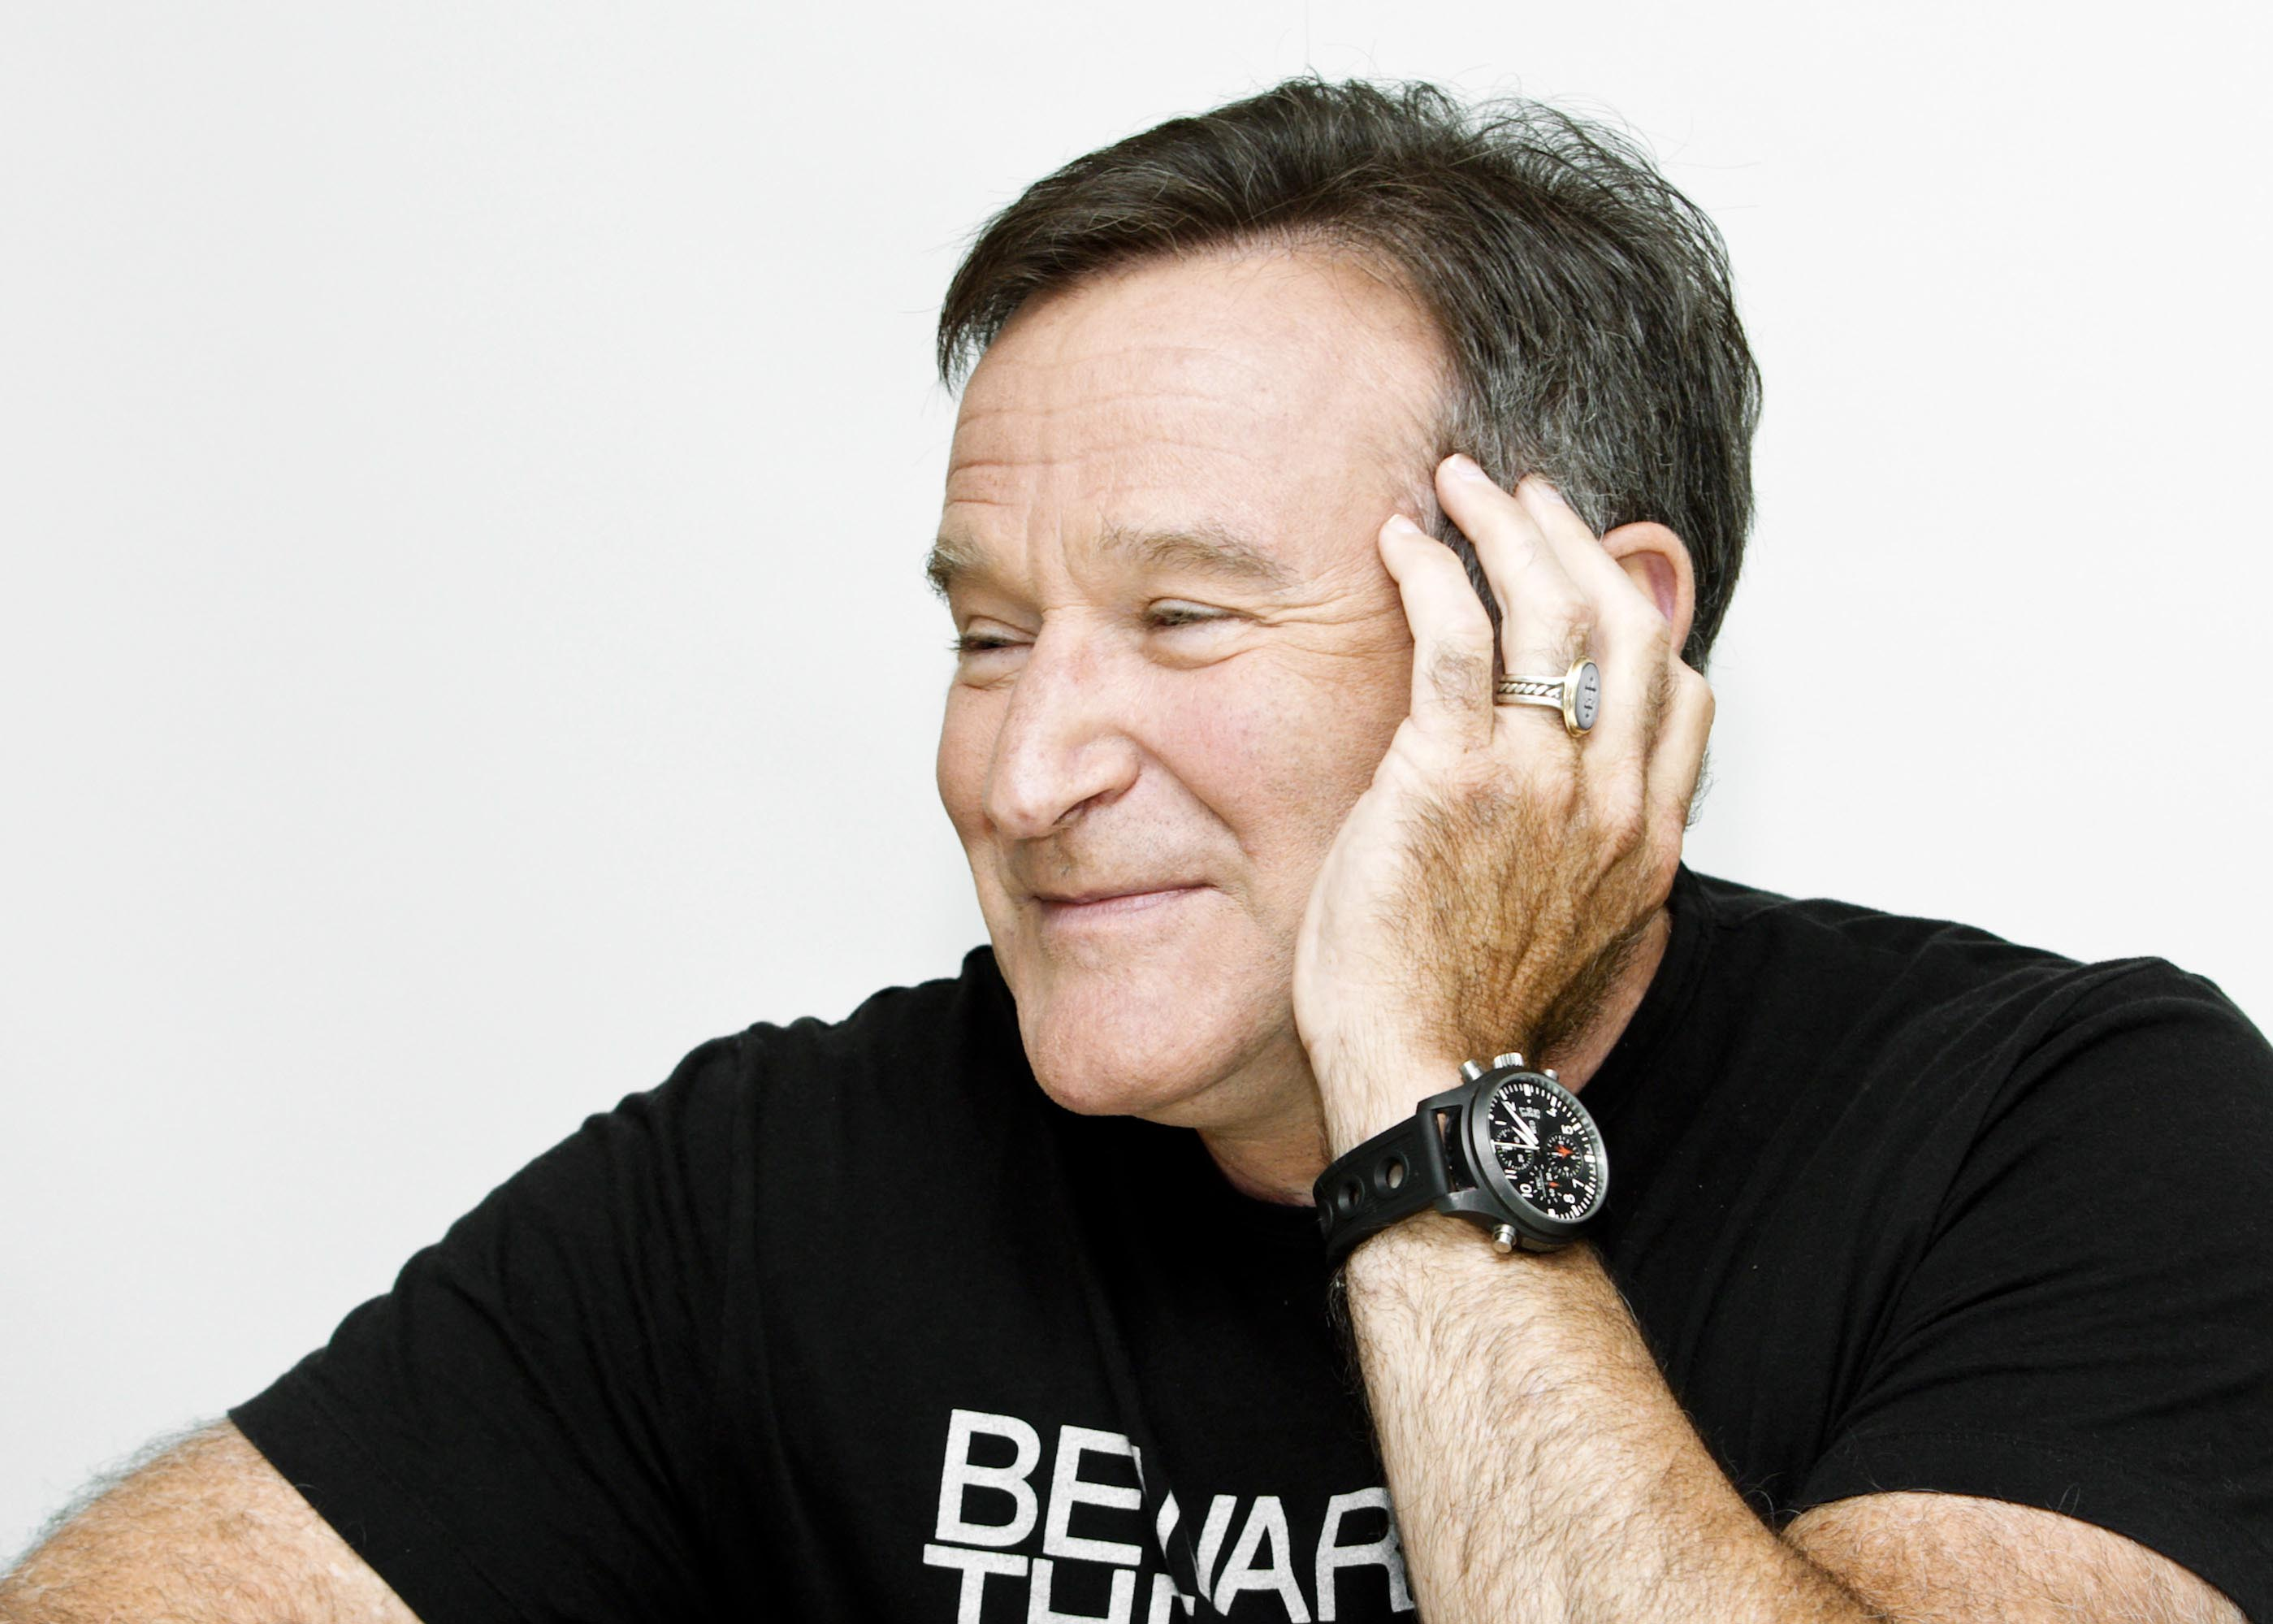 Robin-Williams-robin-williams-32089730-2798-1999